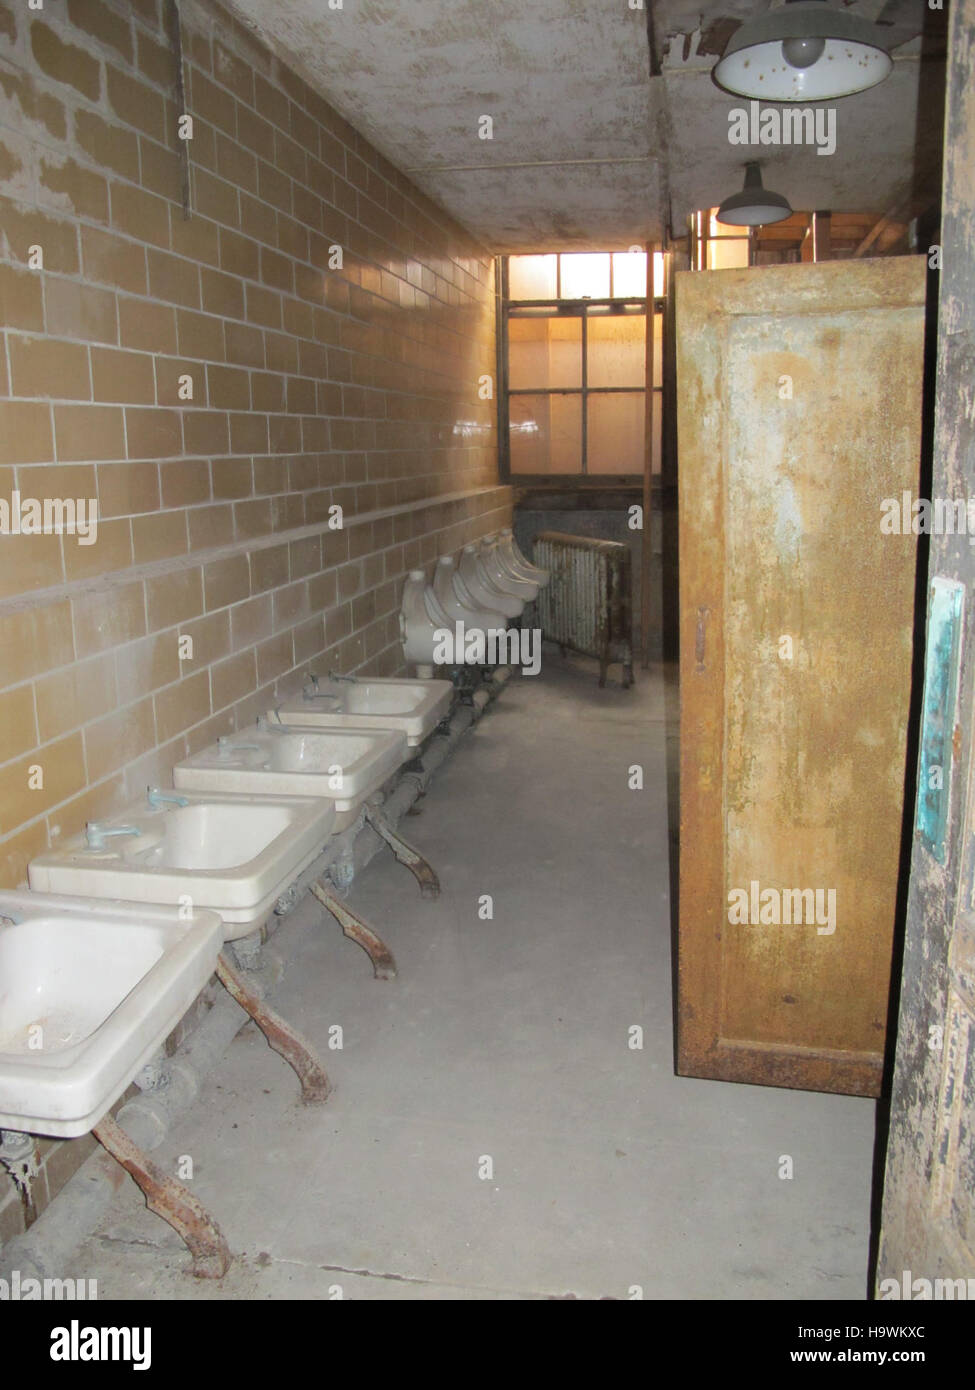 ellis island Bathroom sinks - Stock Image